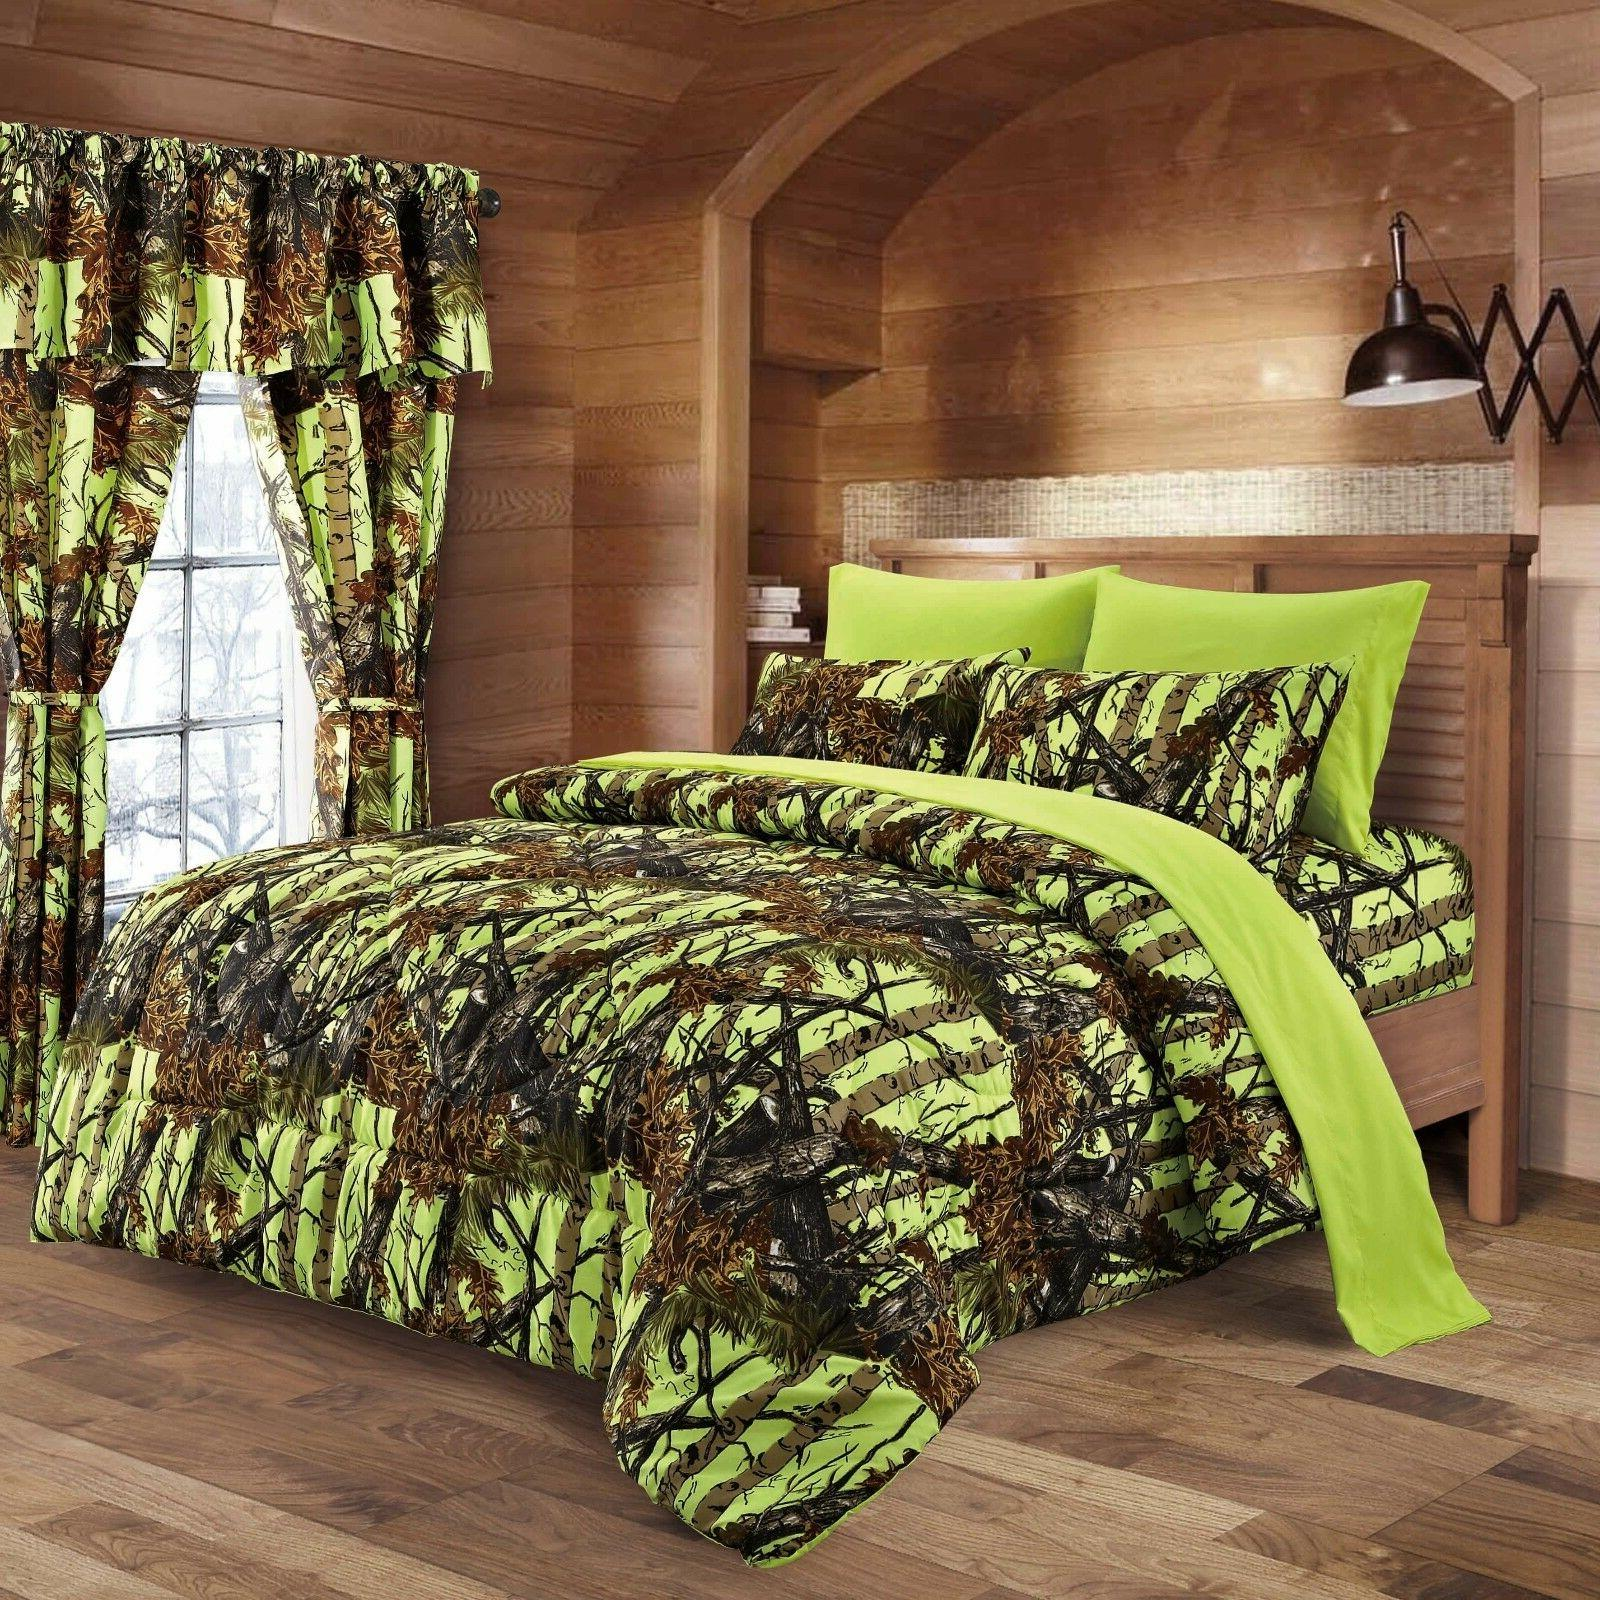 KING SIZE LIME CAMO BEDDING 1 PC COMFORTER ONLY SPREAD GREEN